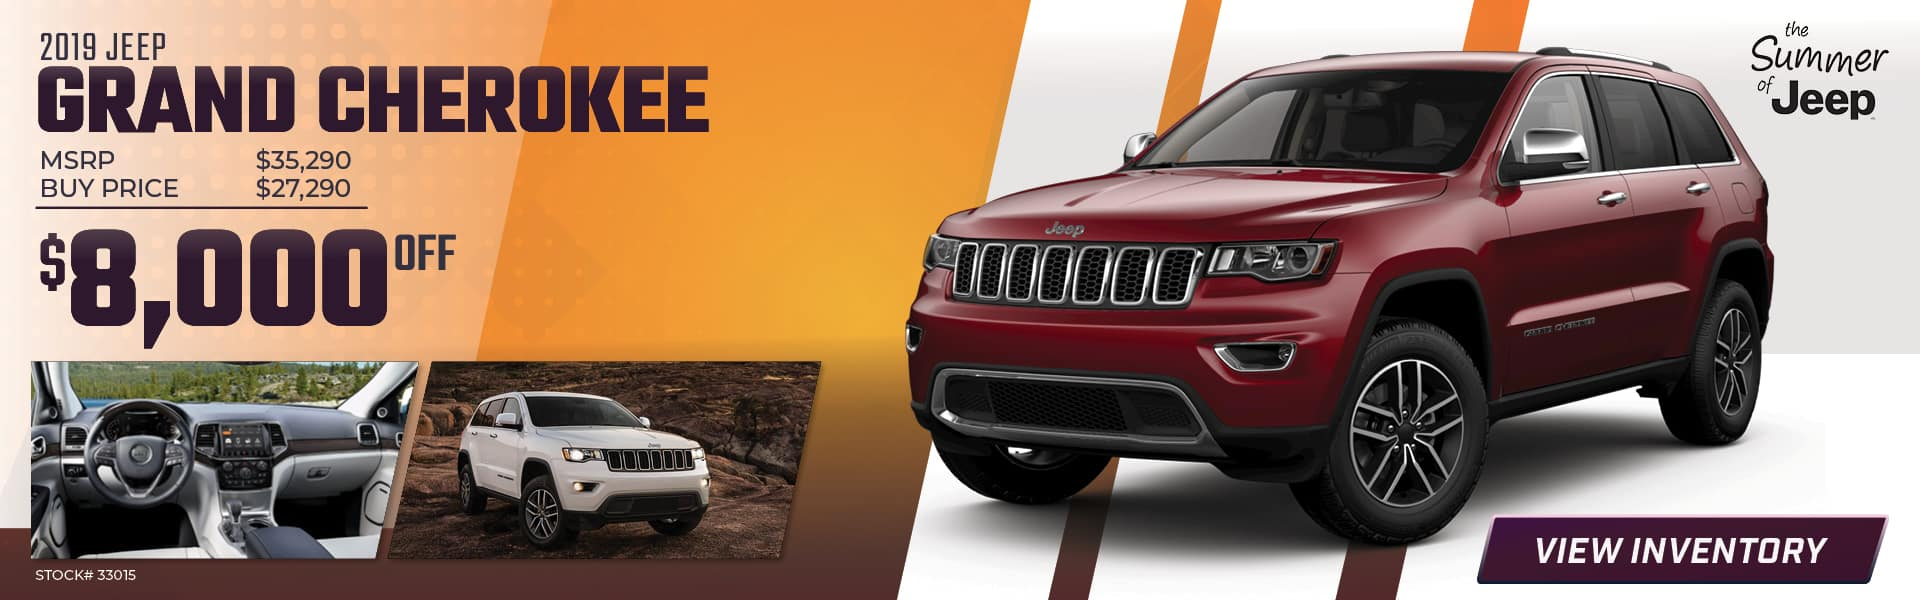 hight resolution of 2019 jeep cherokee for sale in atlanta georgia